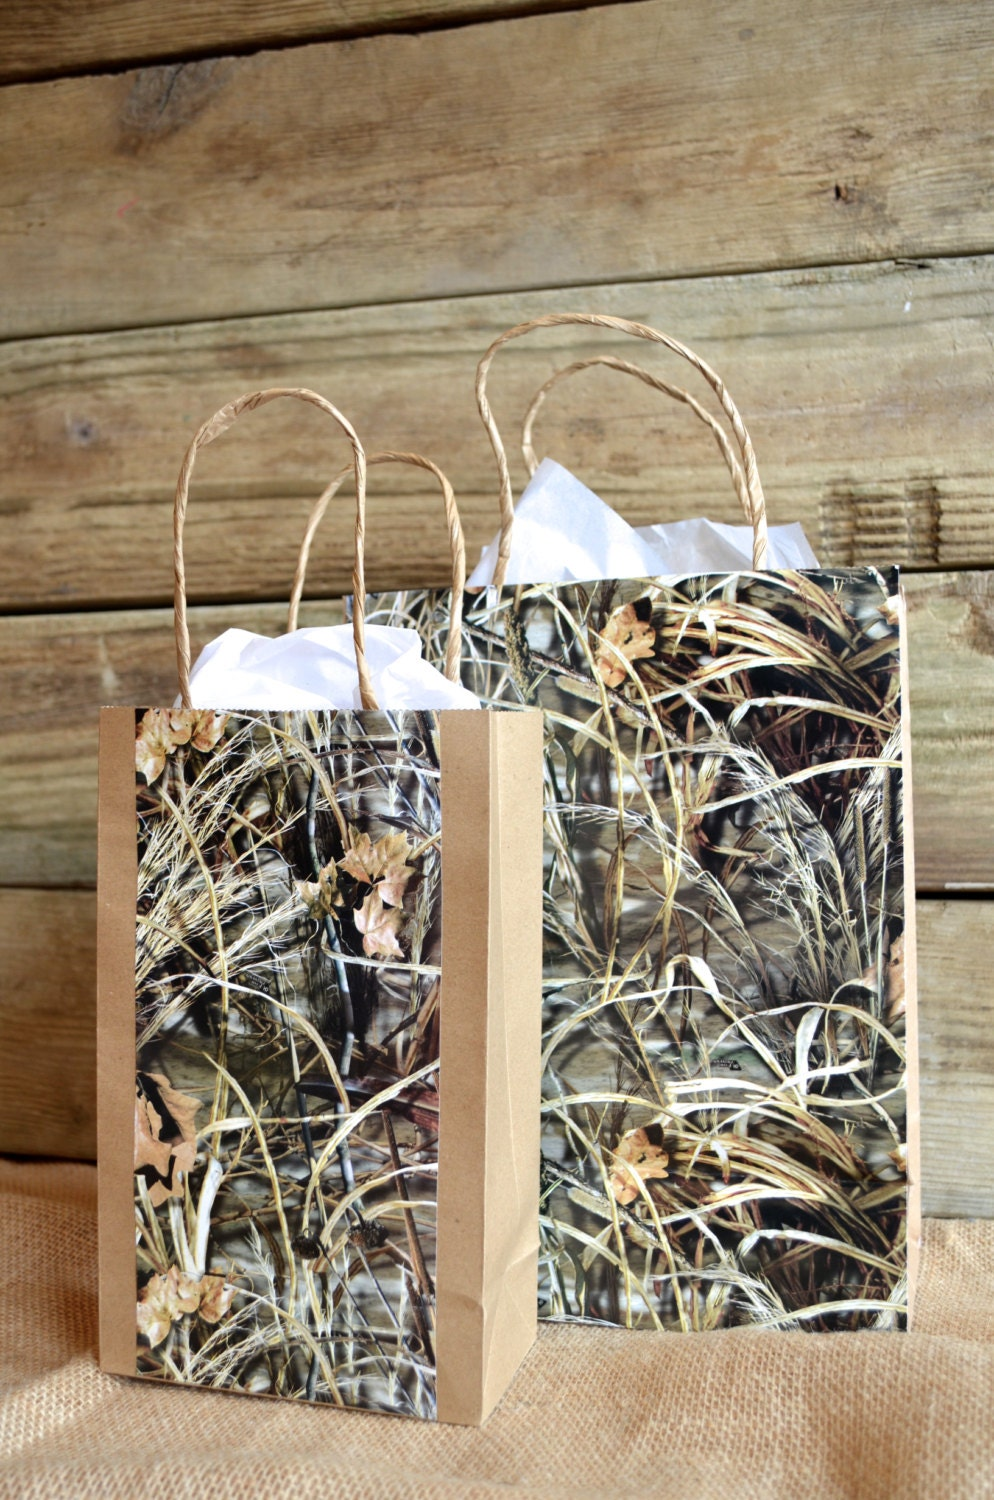 realtree wrapping paper 1-16 of 92 results for realtree gift wrap deer antlers ~ gift wrap paper for any occasion by premium gift wrap $2900 $ 29 00 only 2 left in stock - order soon product features jumble of antlers ~ anny occasion gift wrap realtree giftwrap two pack - blue and natural print 70 sq ft total.